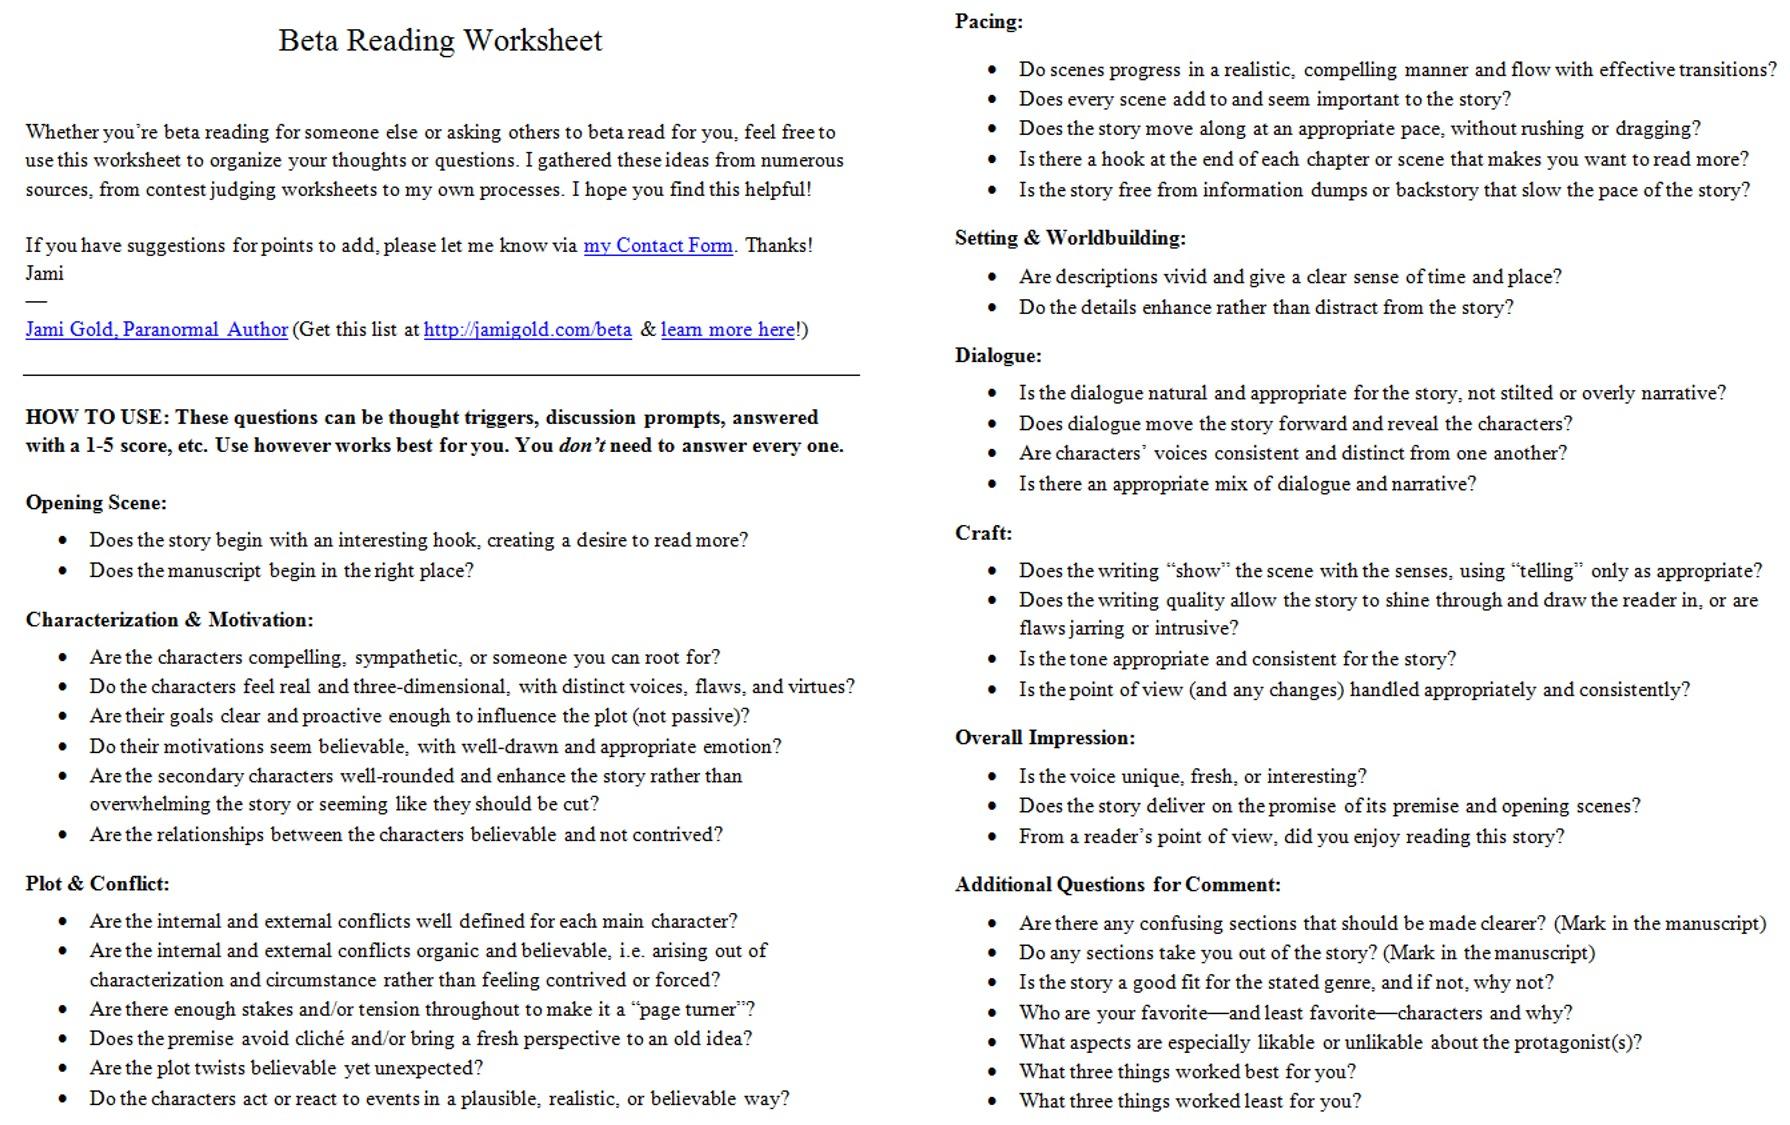 Weirdmailus  Terrific Worksheets For Writers  Jami Gold Paranormal Author With Entrancing Screen Shot Of The Twopage Beta Reading Worksheet With Archaic Toddler Math Worksheets Also Language Worksheets For Kindergarten In Addition Worksheet Pythagorean Theorem And Saxon Math Worksheets Nd Grade As Well As Naming Alkynes Worksheet Additionally Free Worksheets For Kindergarten Math From Jamigoldcom With Weirdmailus  Entrancing Worksheets For Writers  Jami Gold Paranormal Author With Archaic Screen Shot Of The Twopage Beta Reading Worksheet And Terrific Toddler Math Worksheets Also Language Worksheets For Kindergarten In Addition Worksheet Pythagorean Theorem From Jamigoldcom